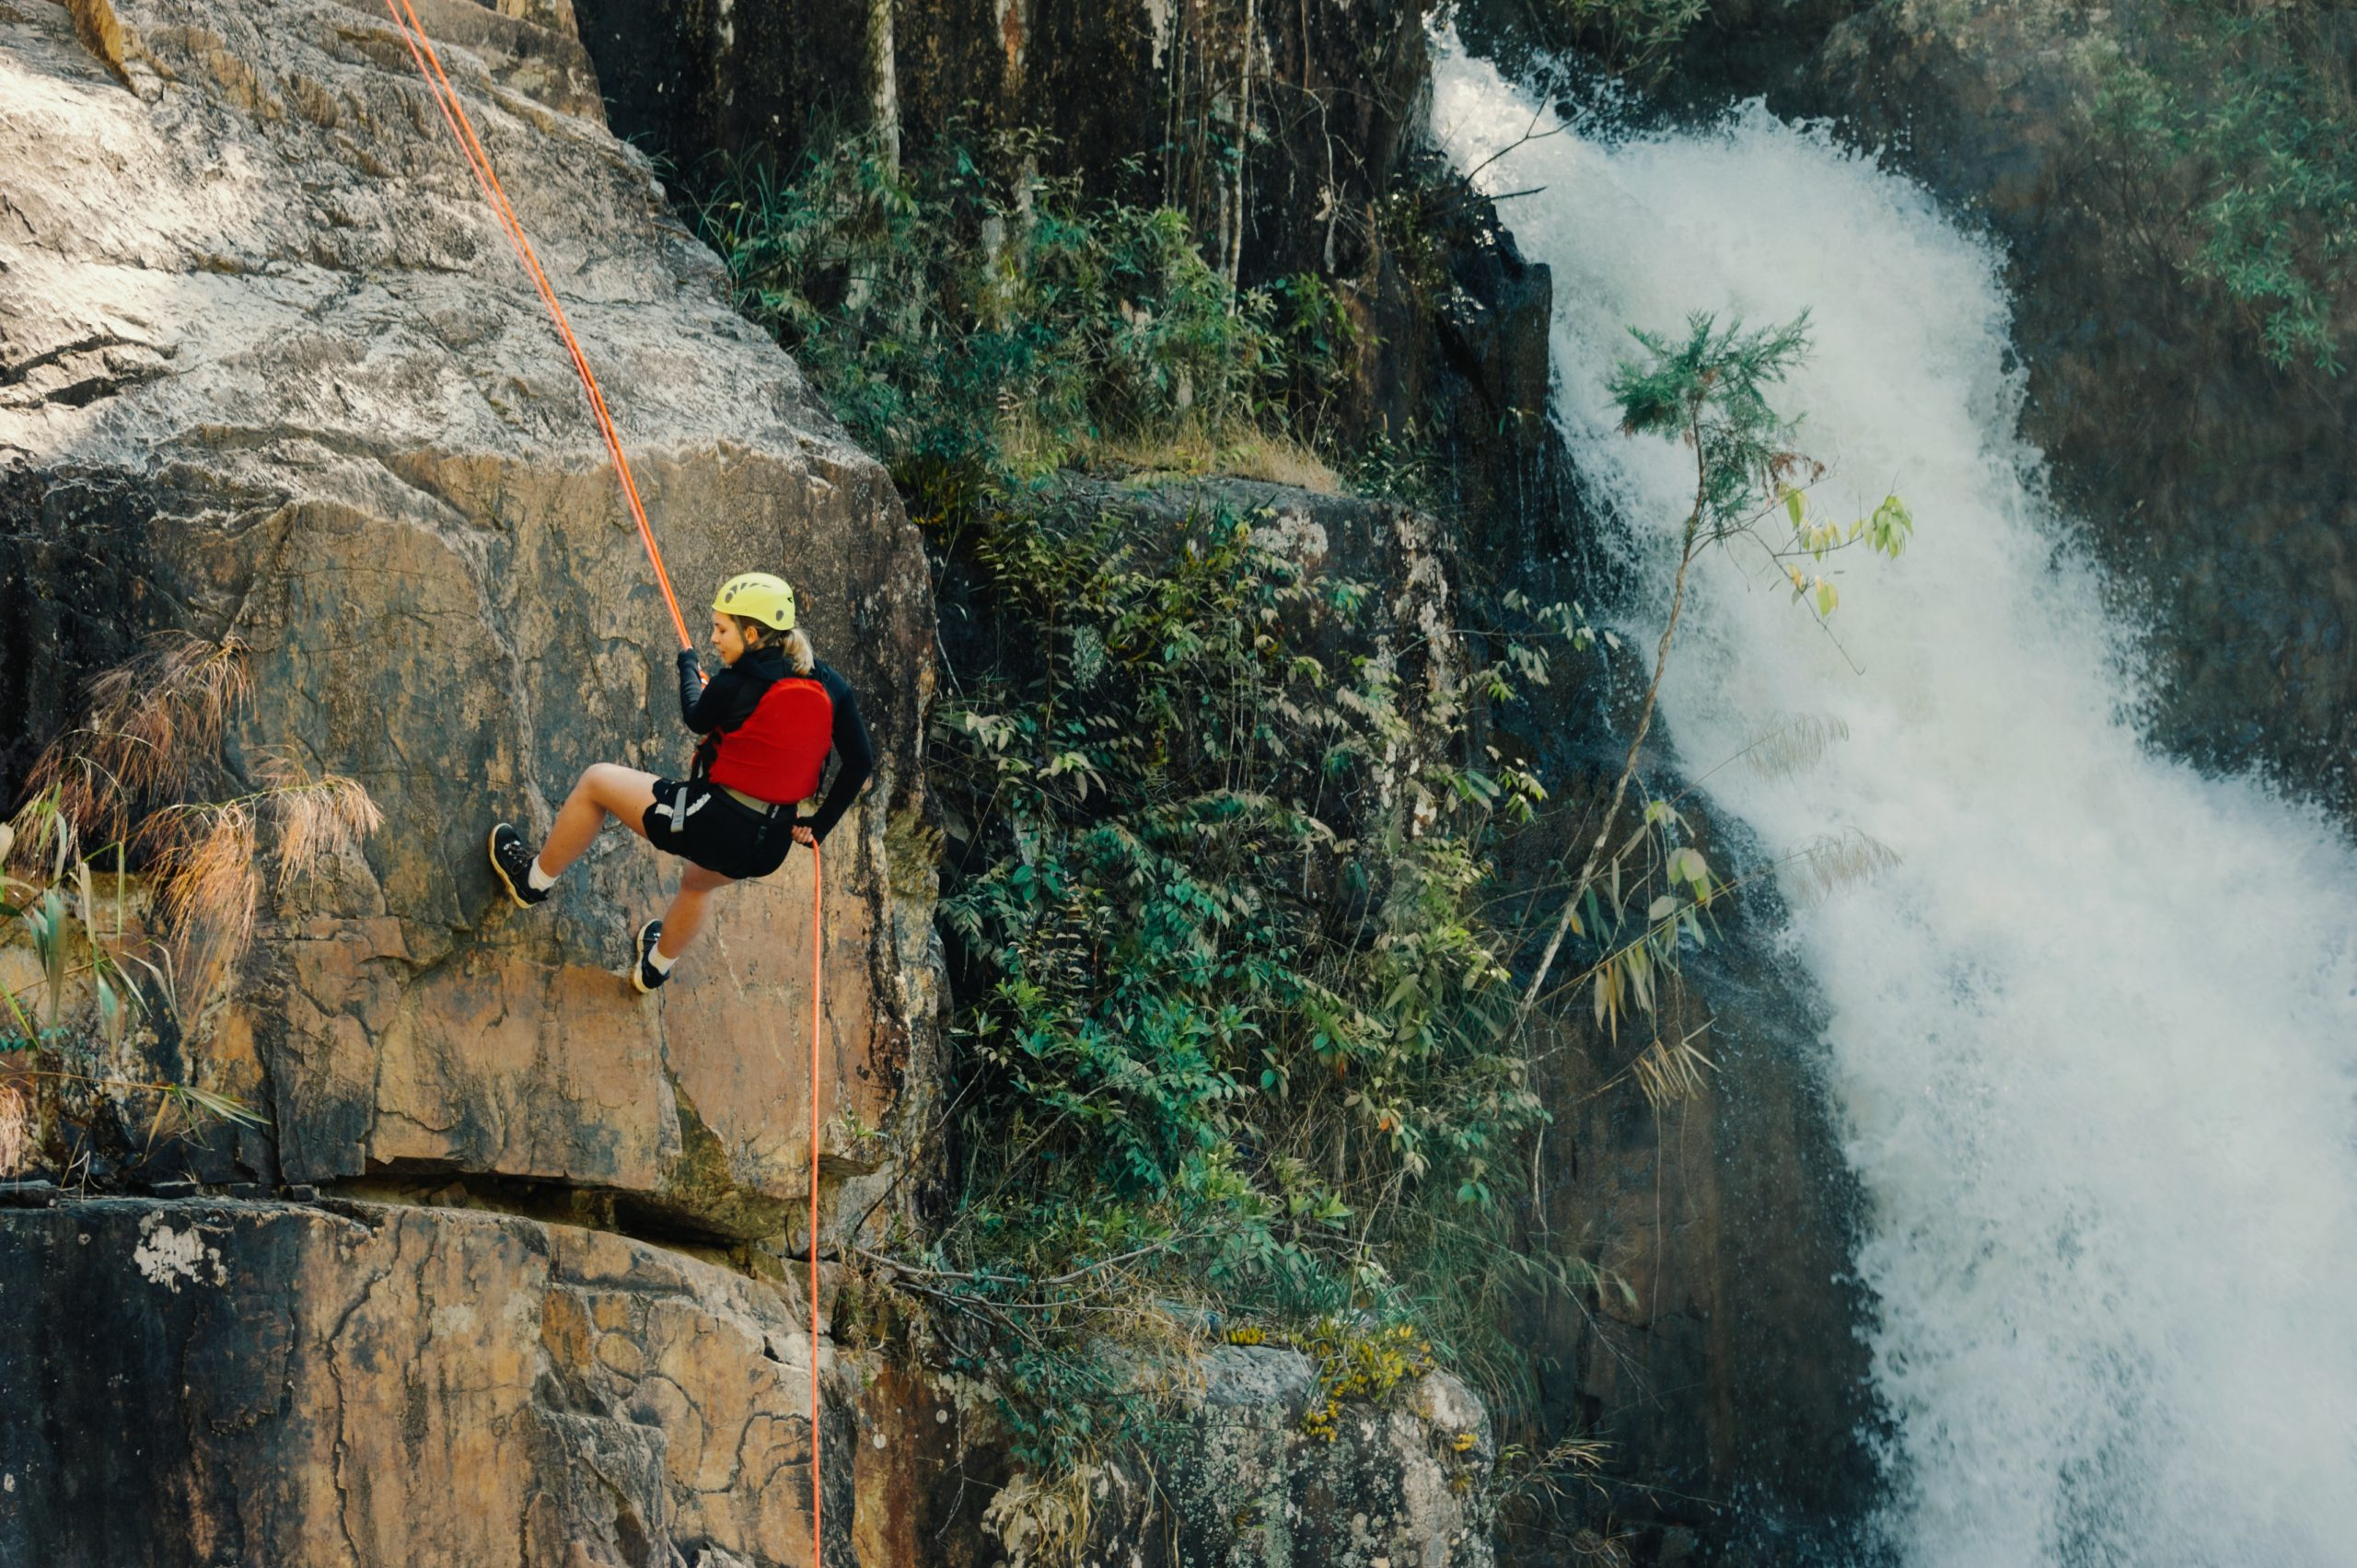 Rock Climbing Elucidated: The Gear You Need For It